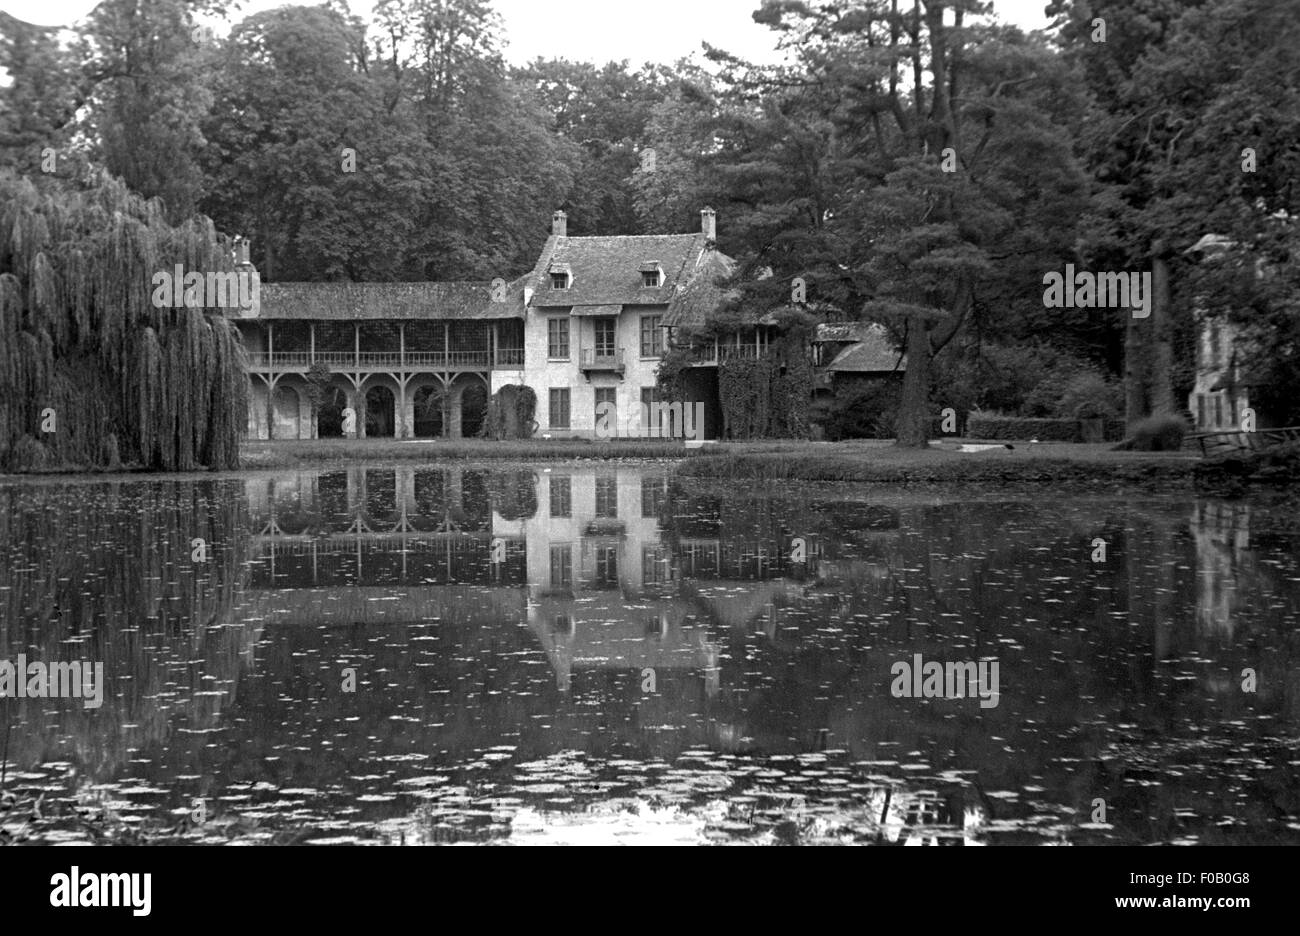 The Queens' hamlet at Versailles - Stock Image